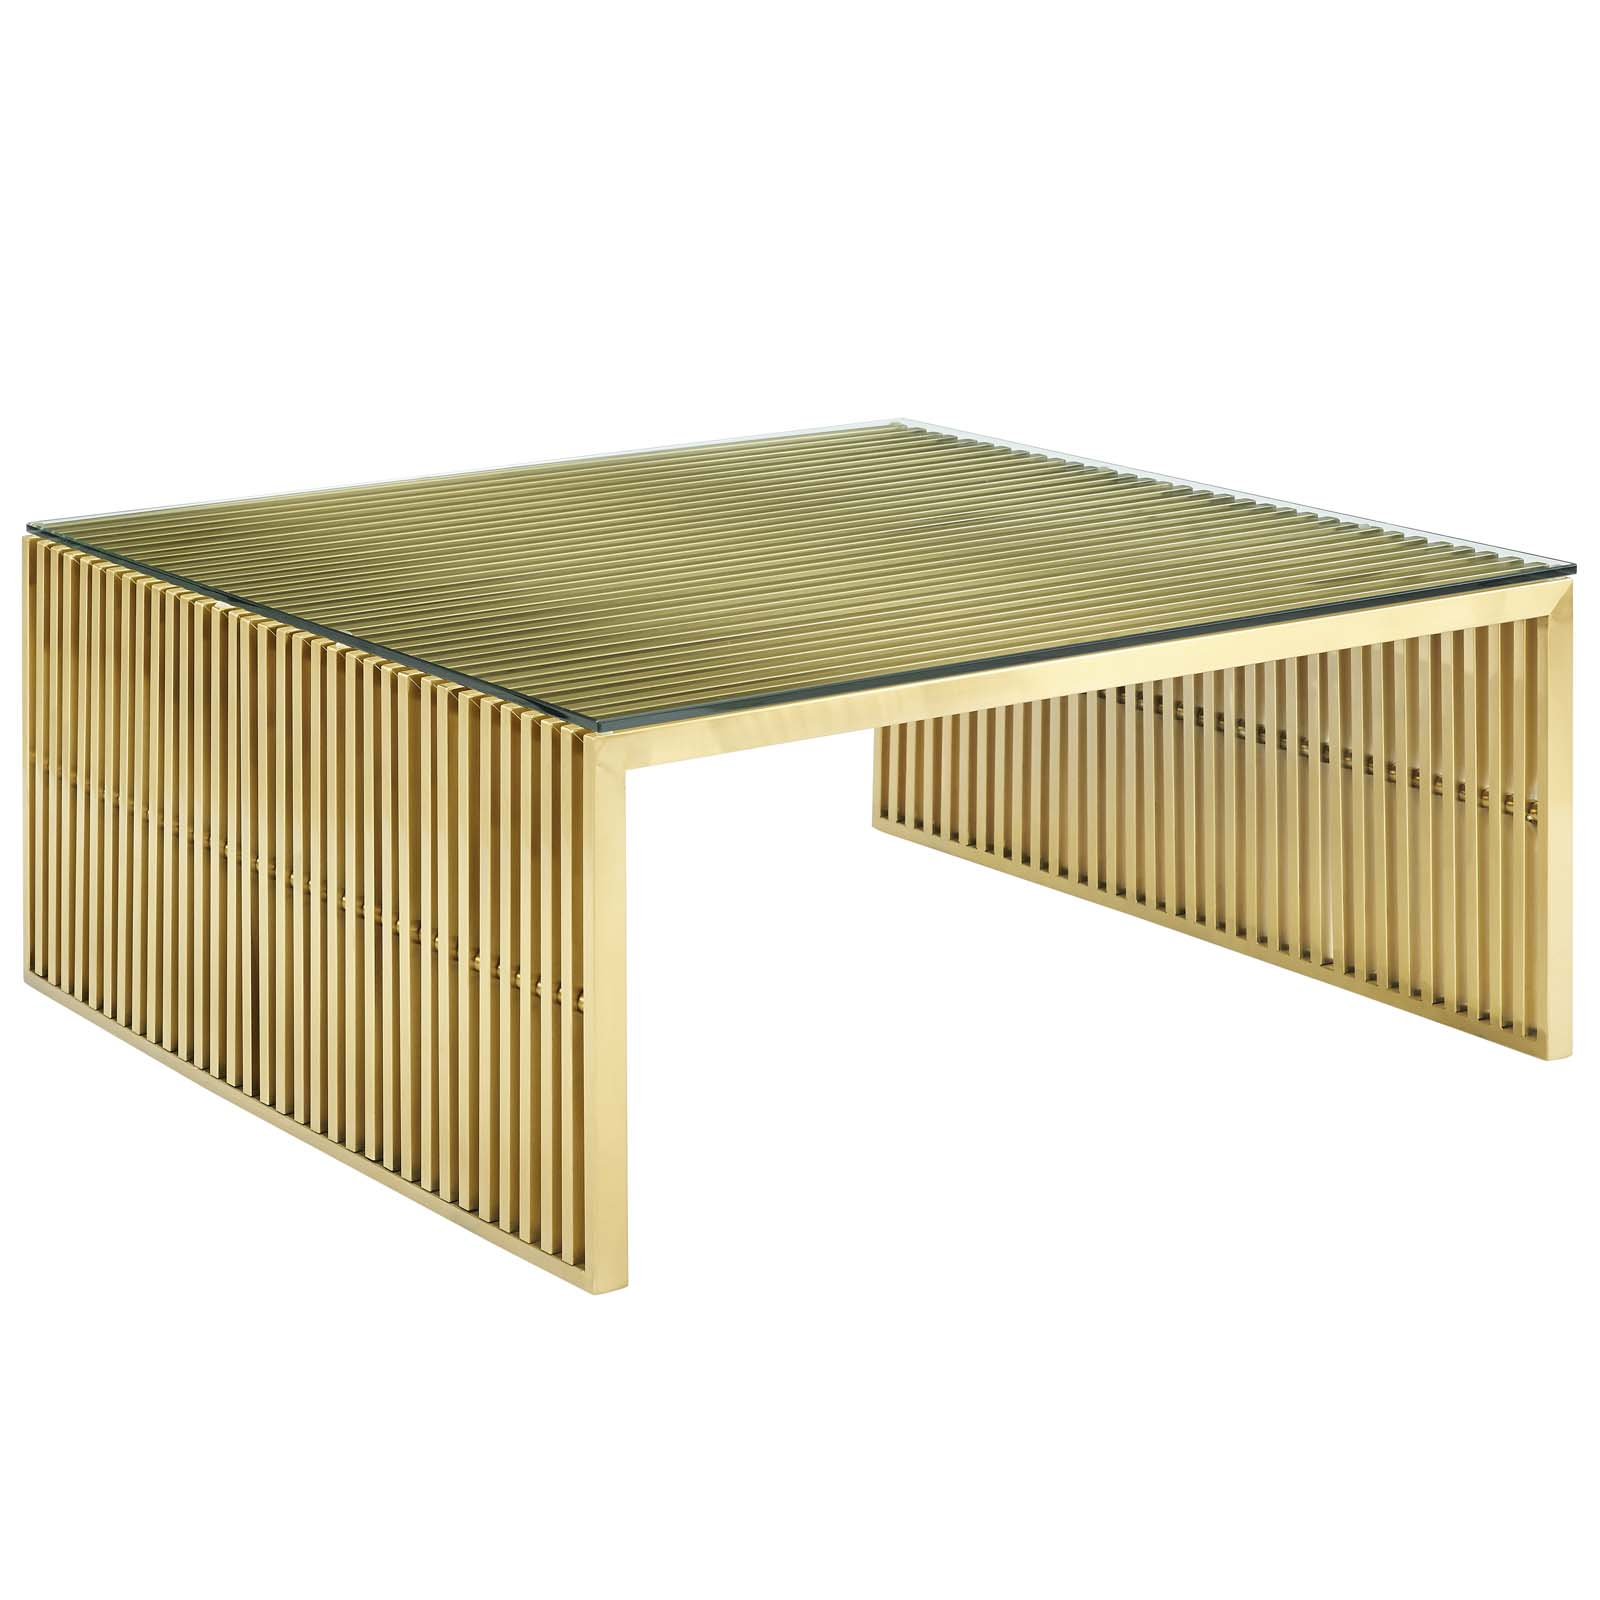 Modway Gridiron Stainless Steel Coffee Table in Gold